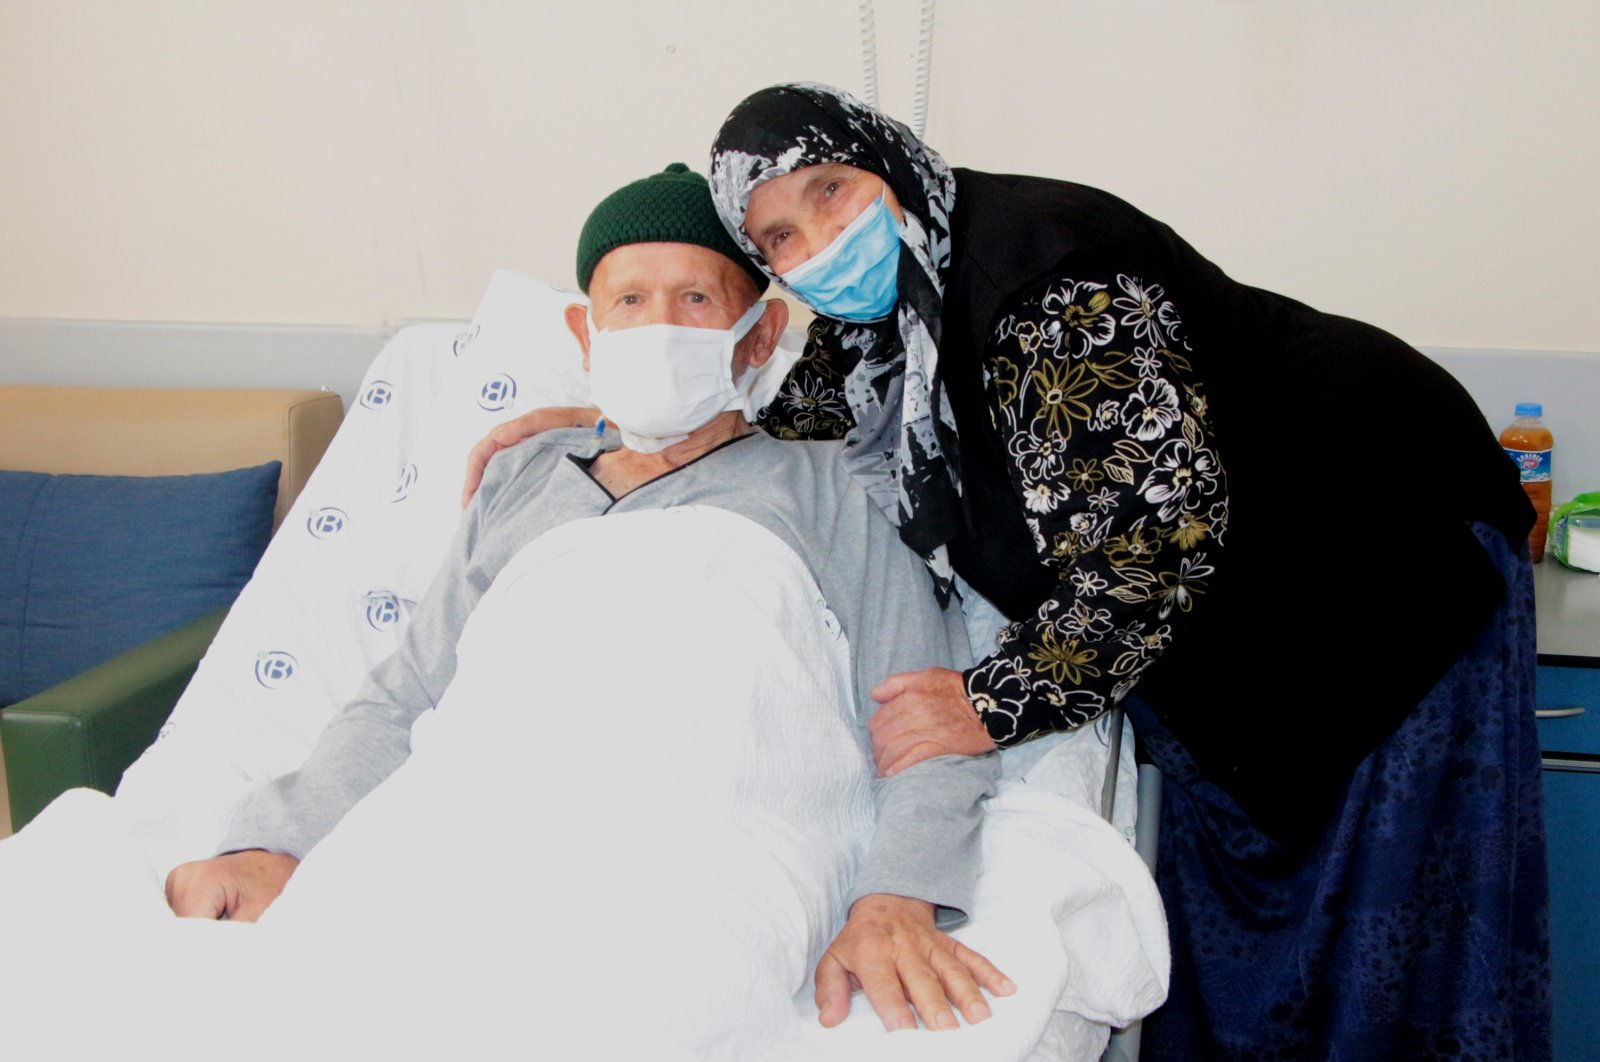 The 80-year-old Ali Öküzcü (L) who beat COVID-19 and cancer with the support of his wife Yeter Öküzcü, Adana, Turkey, Oct. 12, 2021. (DHA Photo)